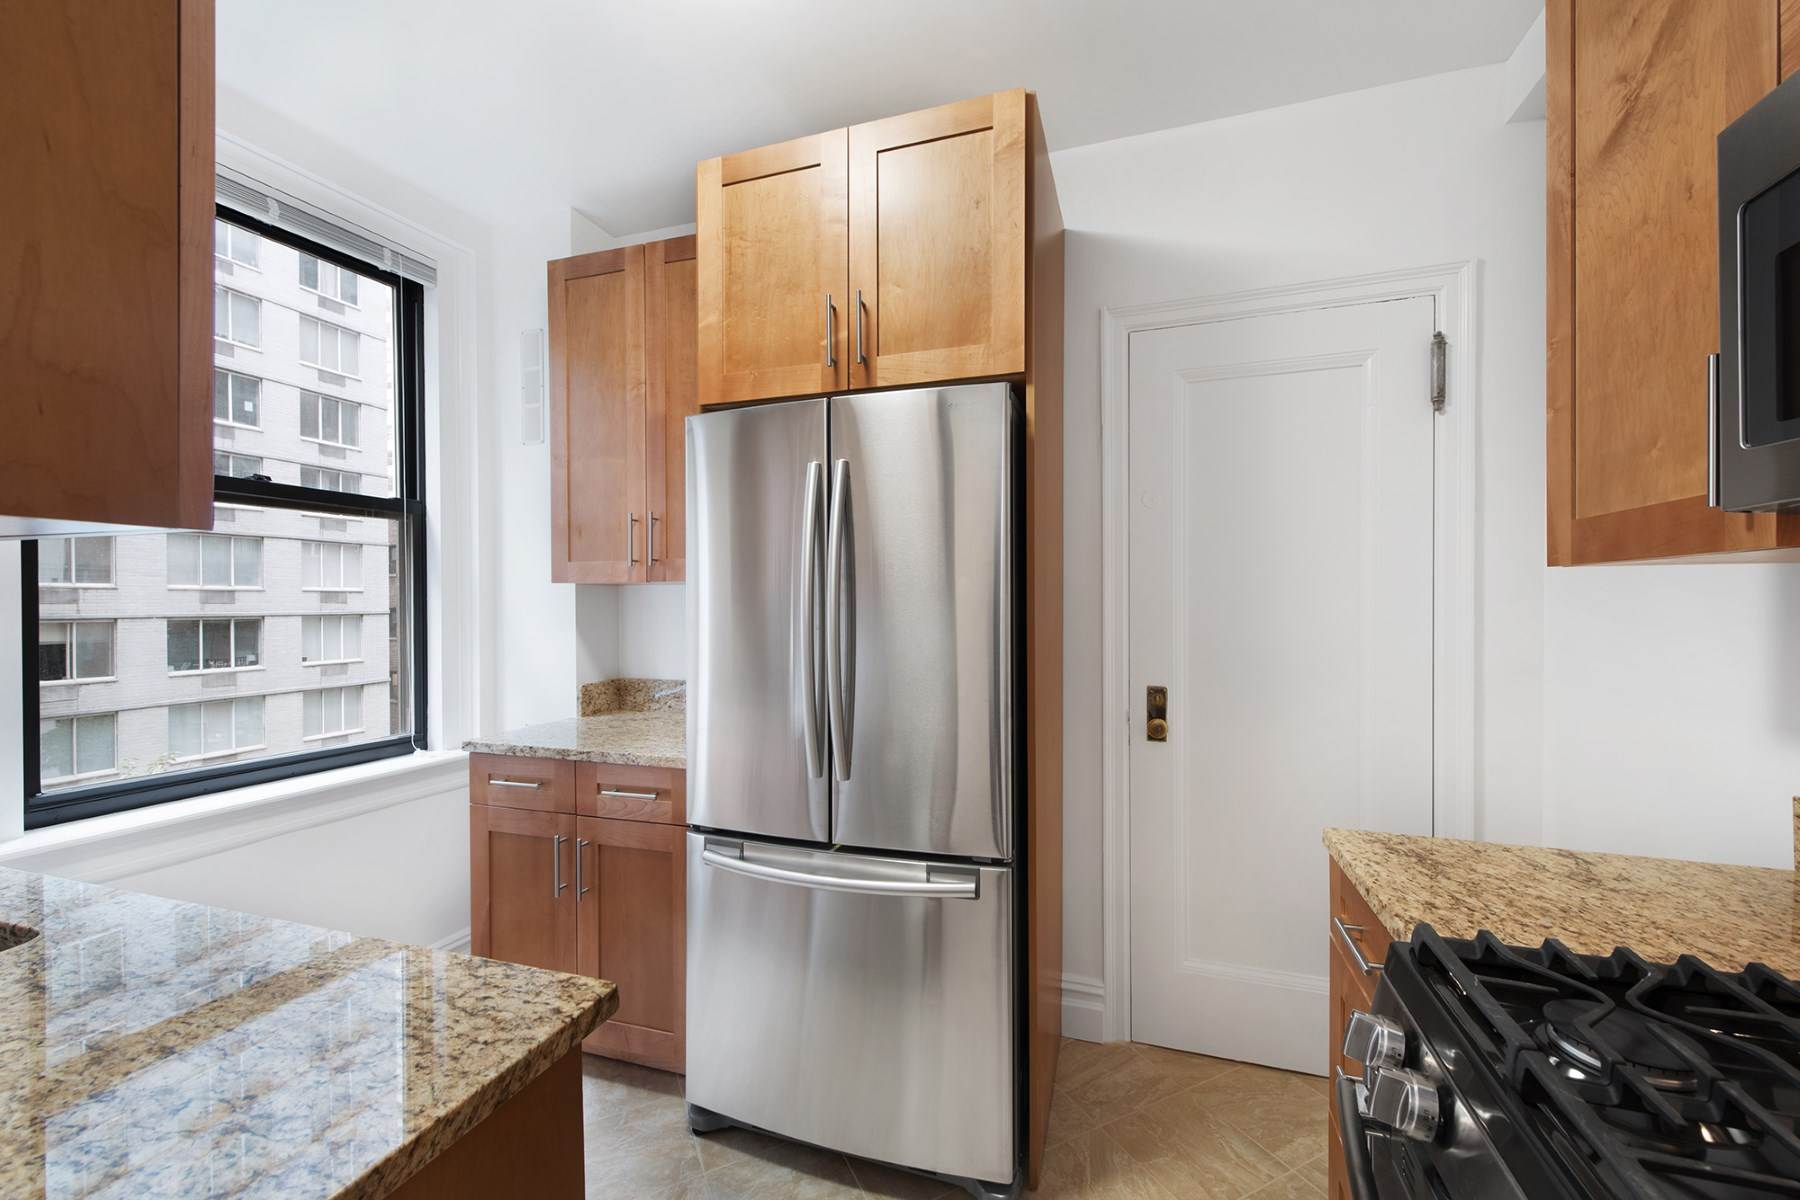 Property Of 340 East 57th Street, Apt. 5B